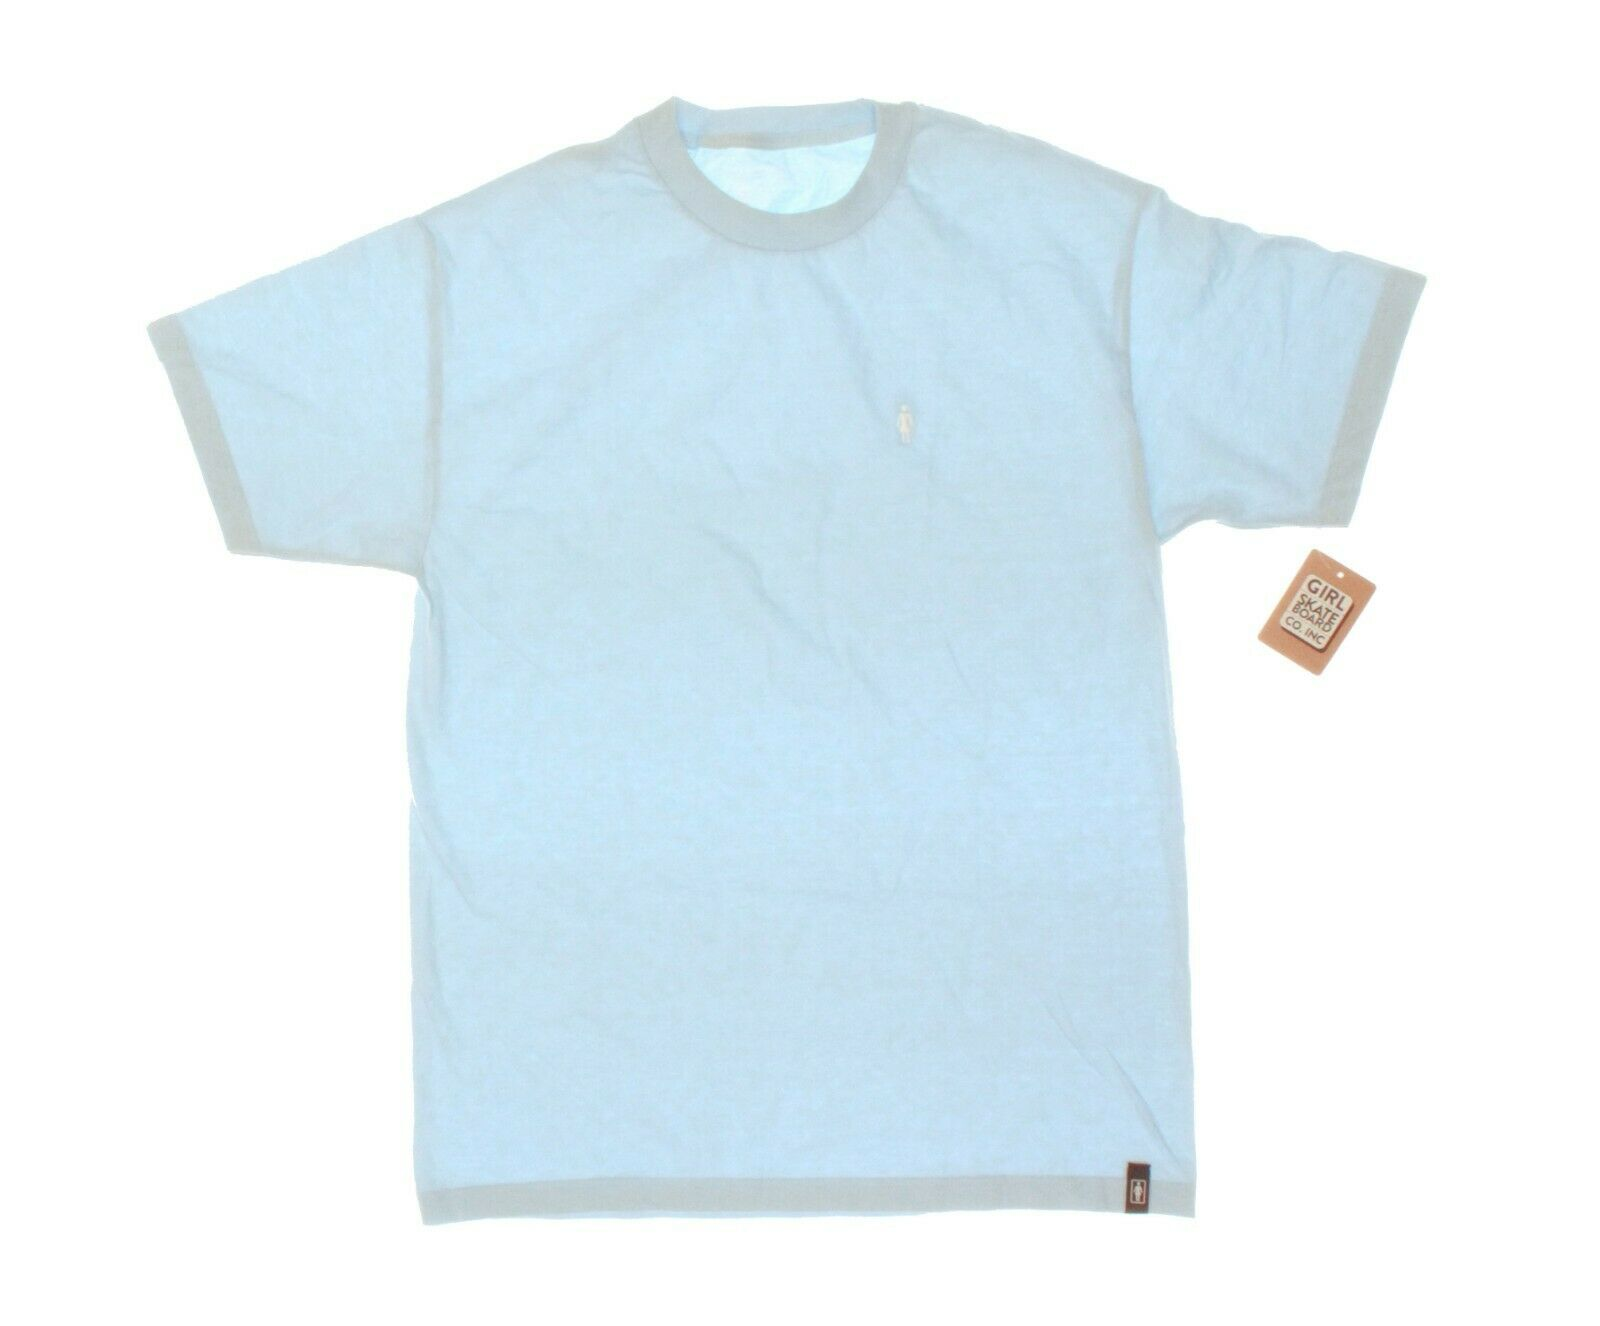 NWT - GIRL SKATEBOARD CO. INC Men's EMBROIDERED Blue S/S CRE